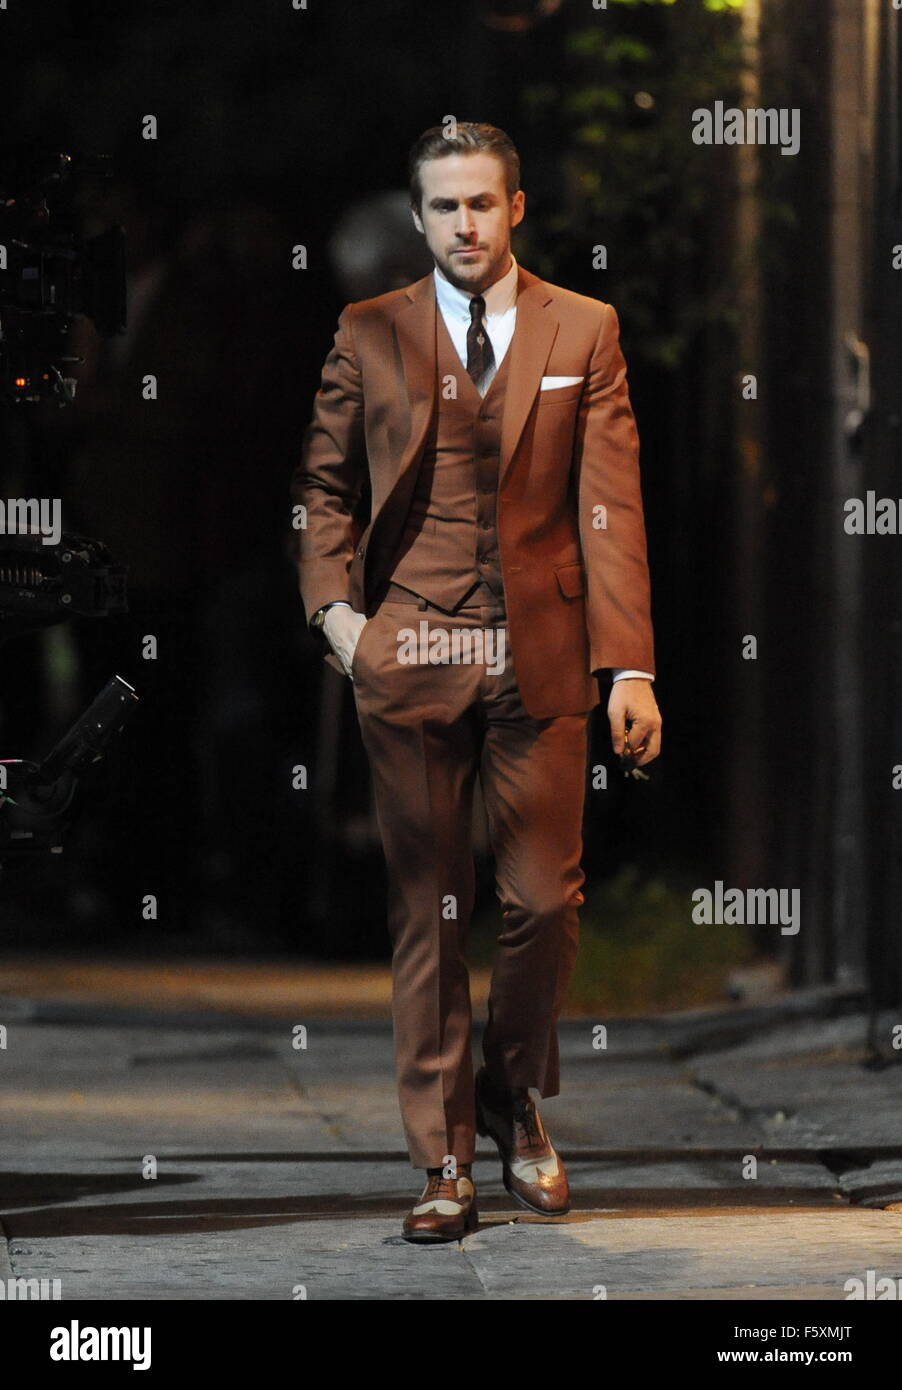 057560fb186cd Ryan Gosling sports a vintage brown suit for a scene in 'La La Land ...